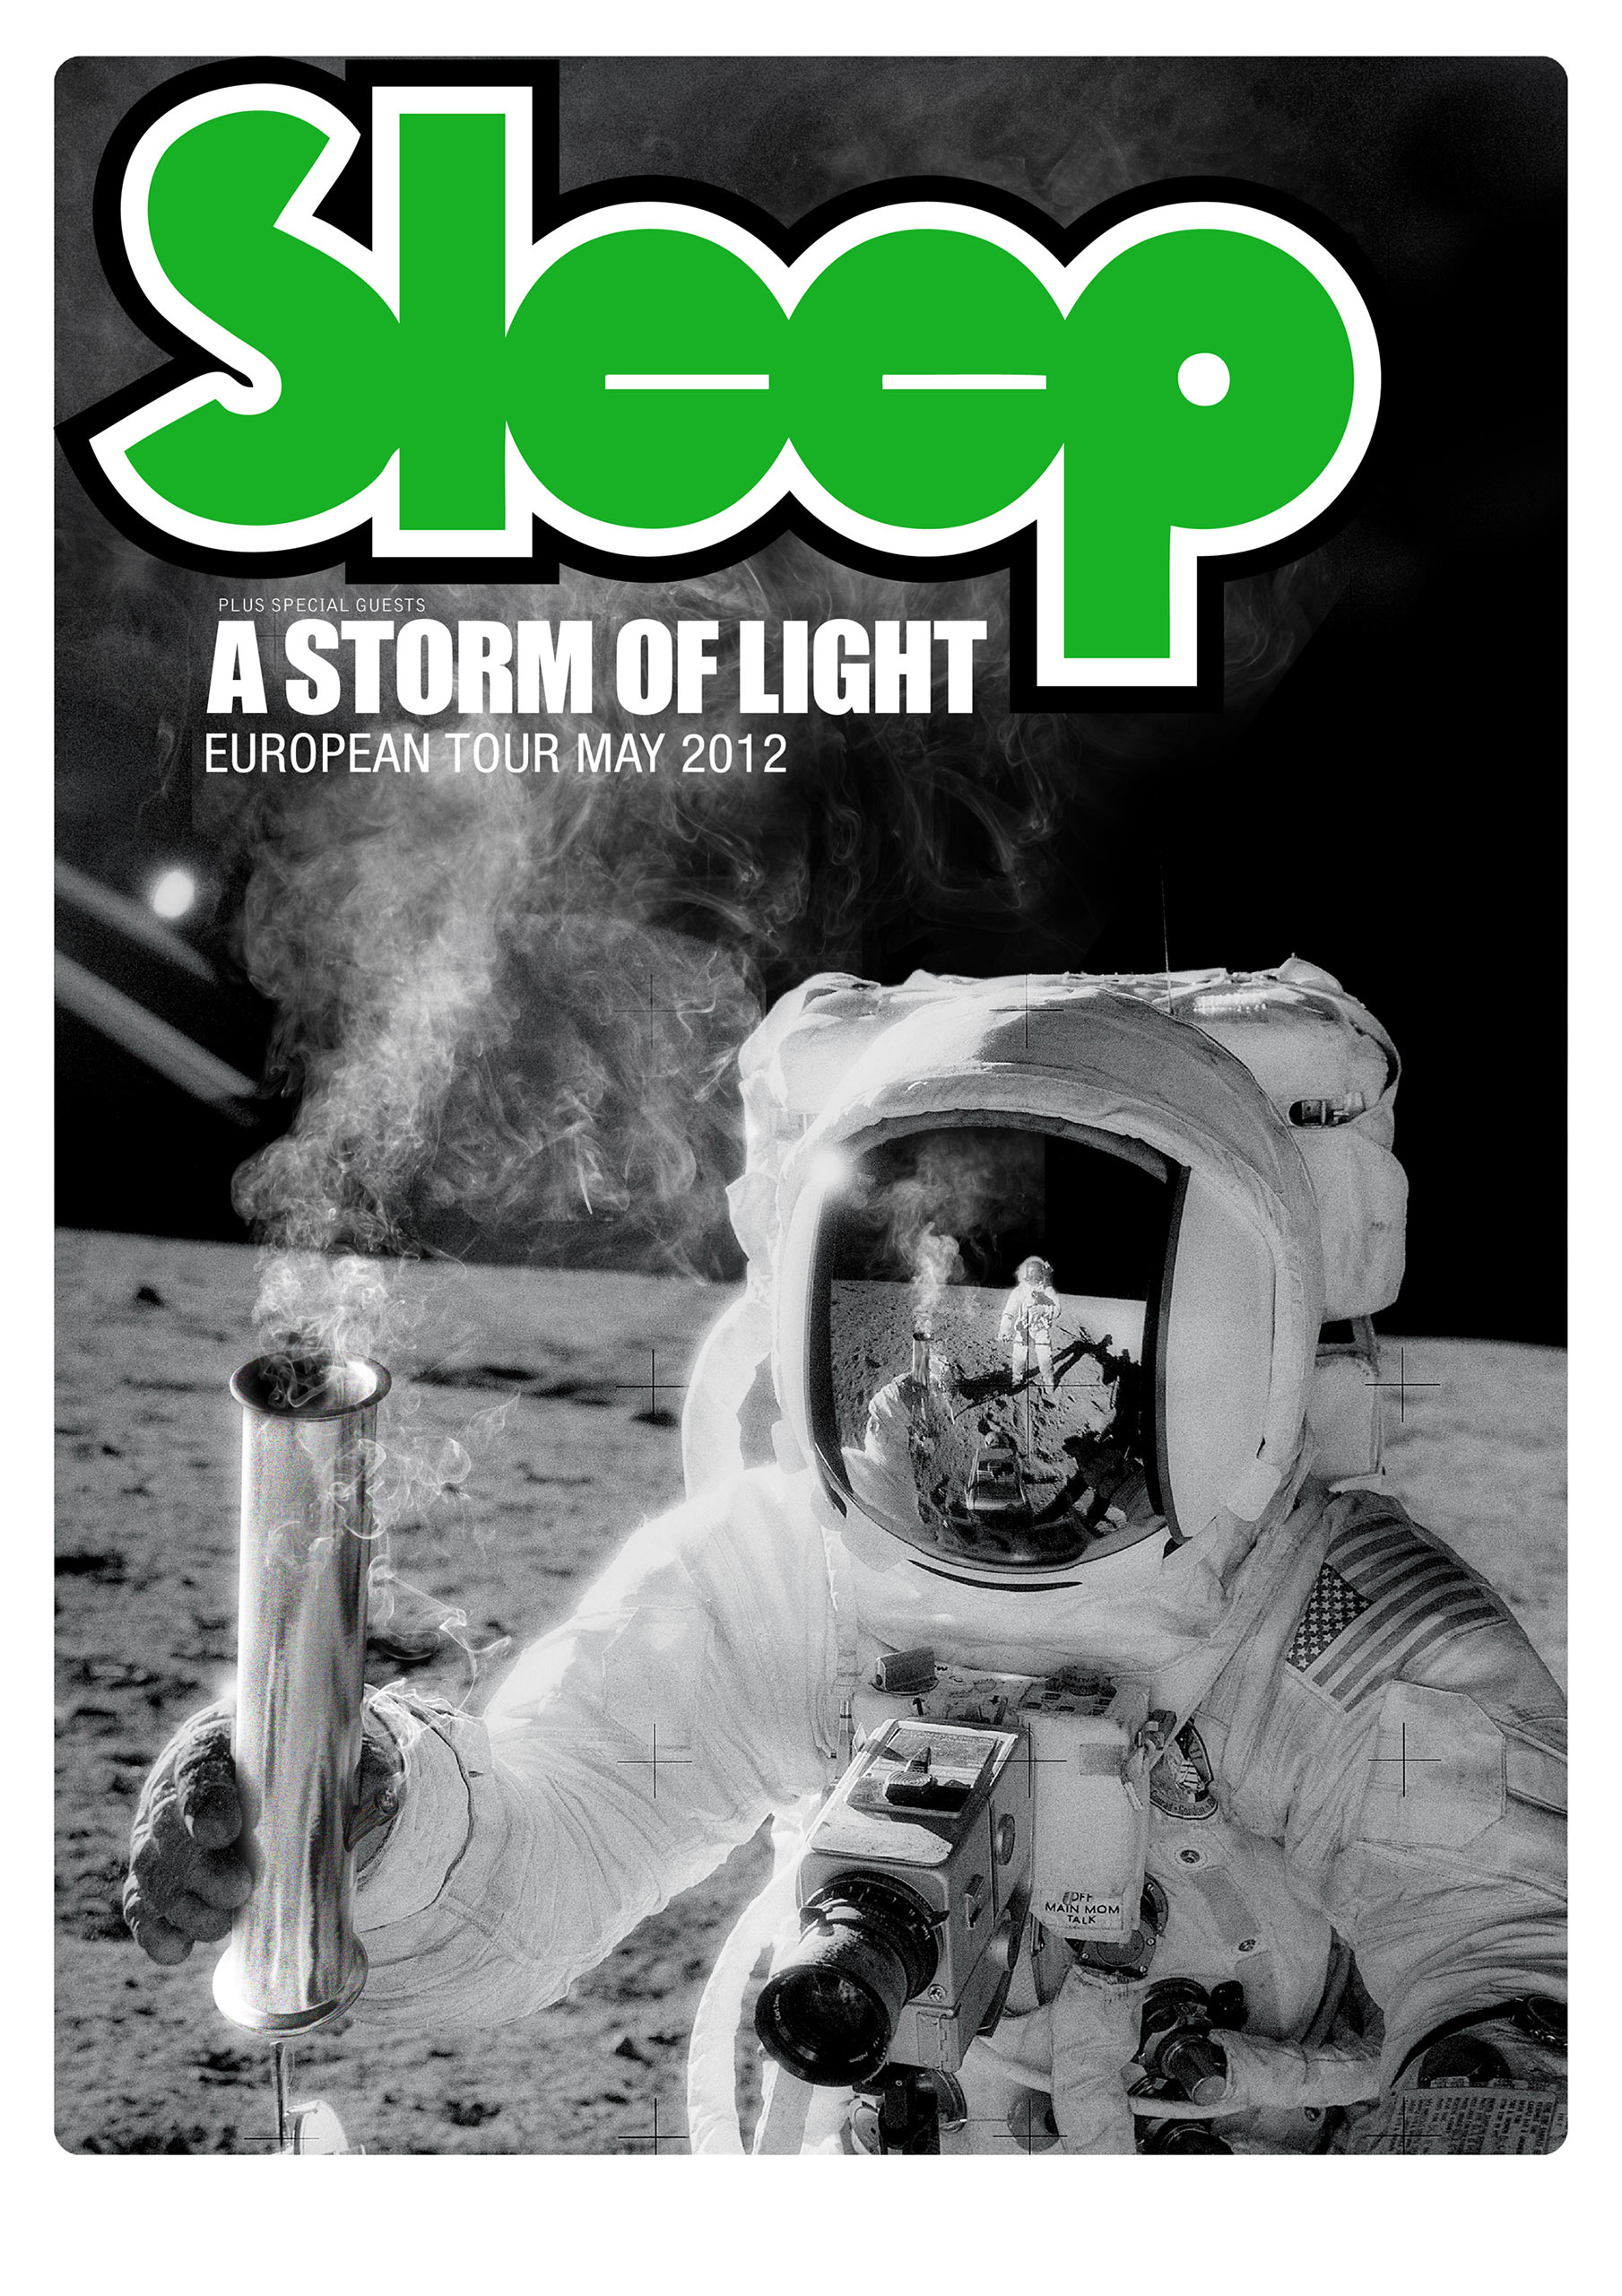 SLEEP / A STORM OF LIGHT - EUROPEAN TOUR